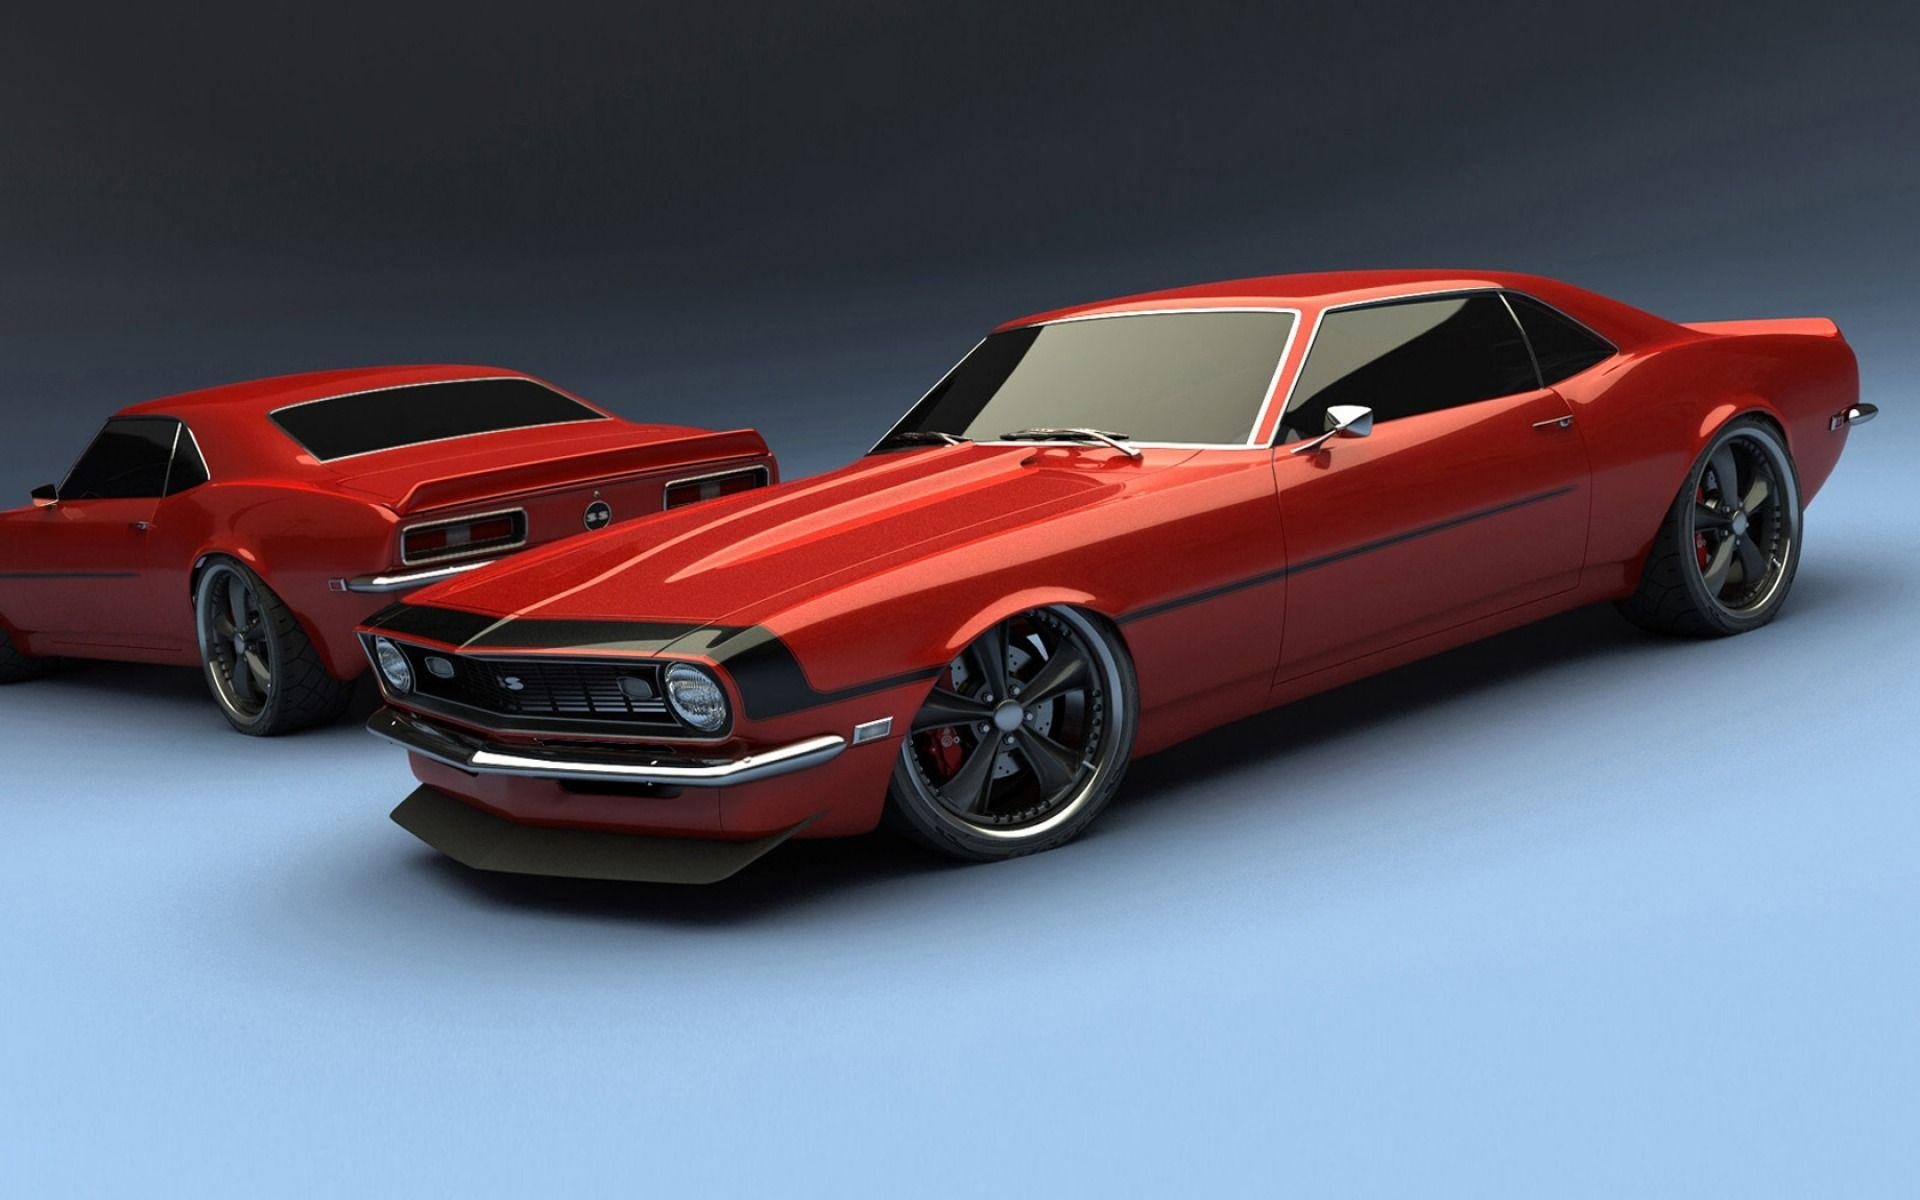 Muscle Car Wallpaper Hd | Wallpapers 2014 | Wallpapers 2014